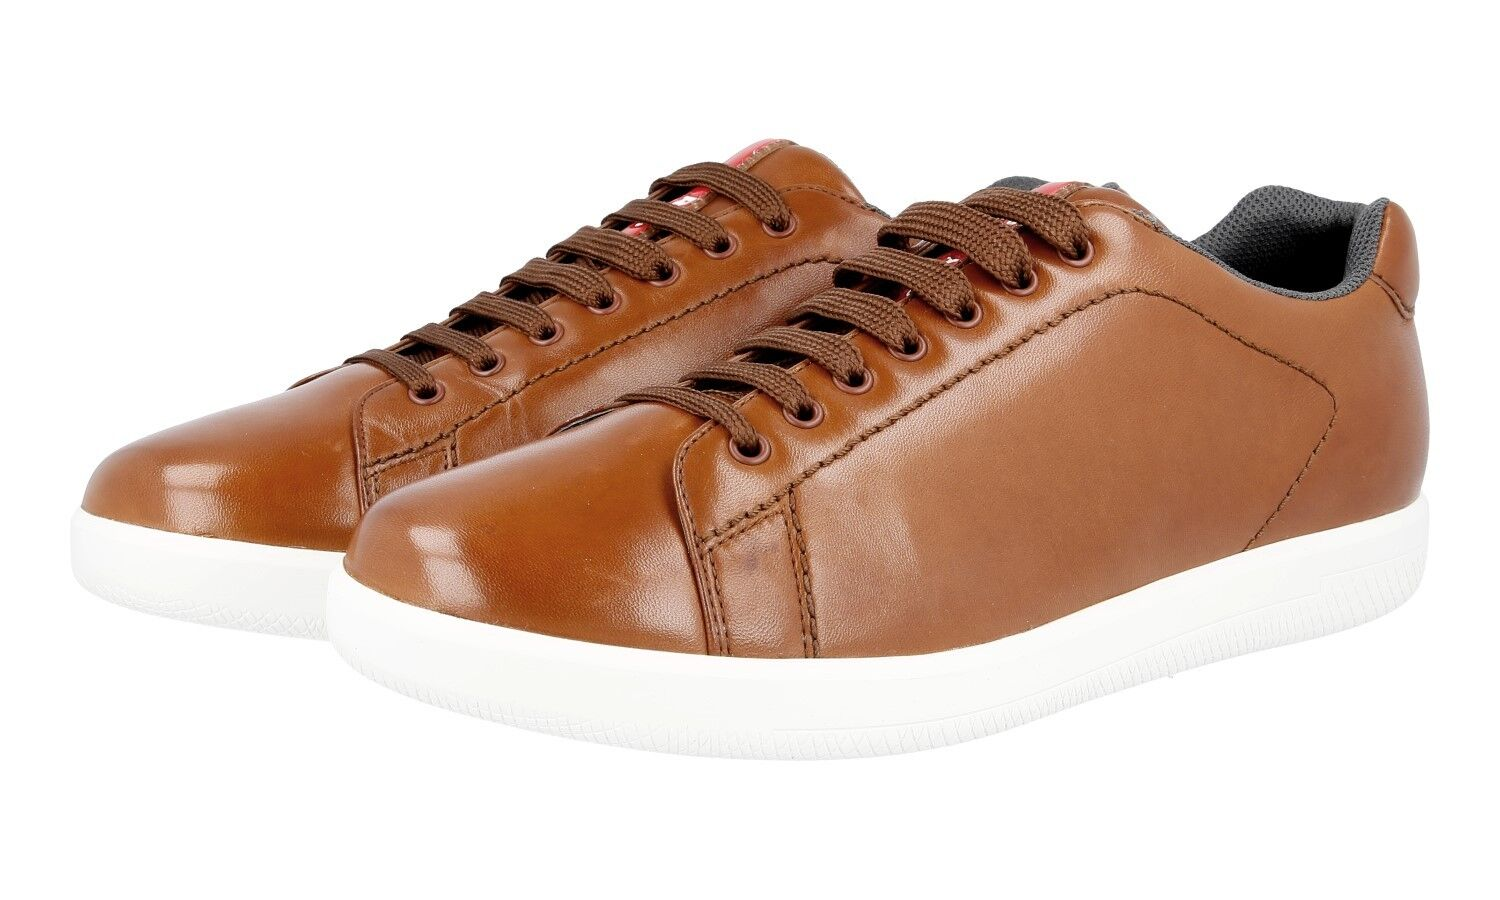 LUXUS PRADA SNEAKER SCHUHE 4E2988 HELLbrown NEU NEW 8,5 42,5 43